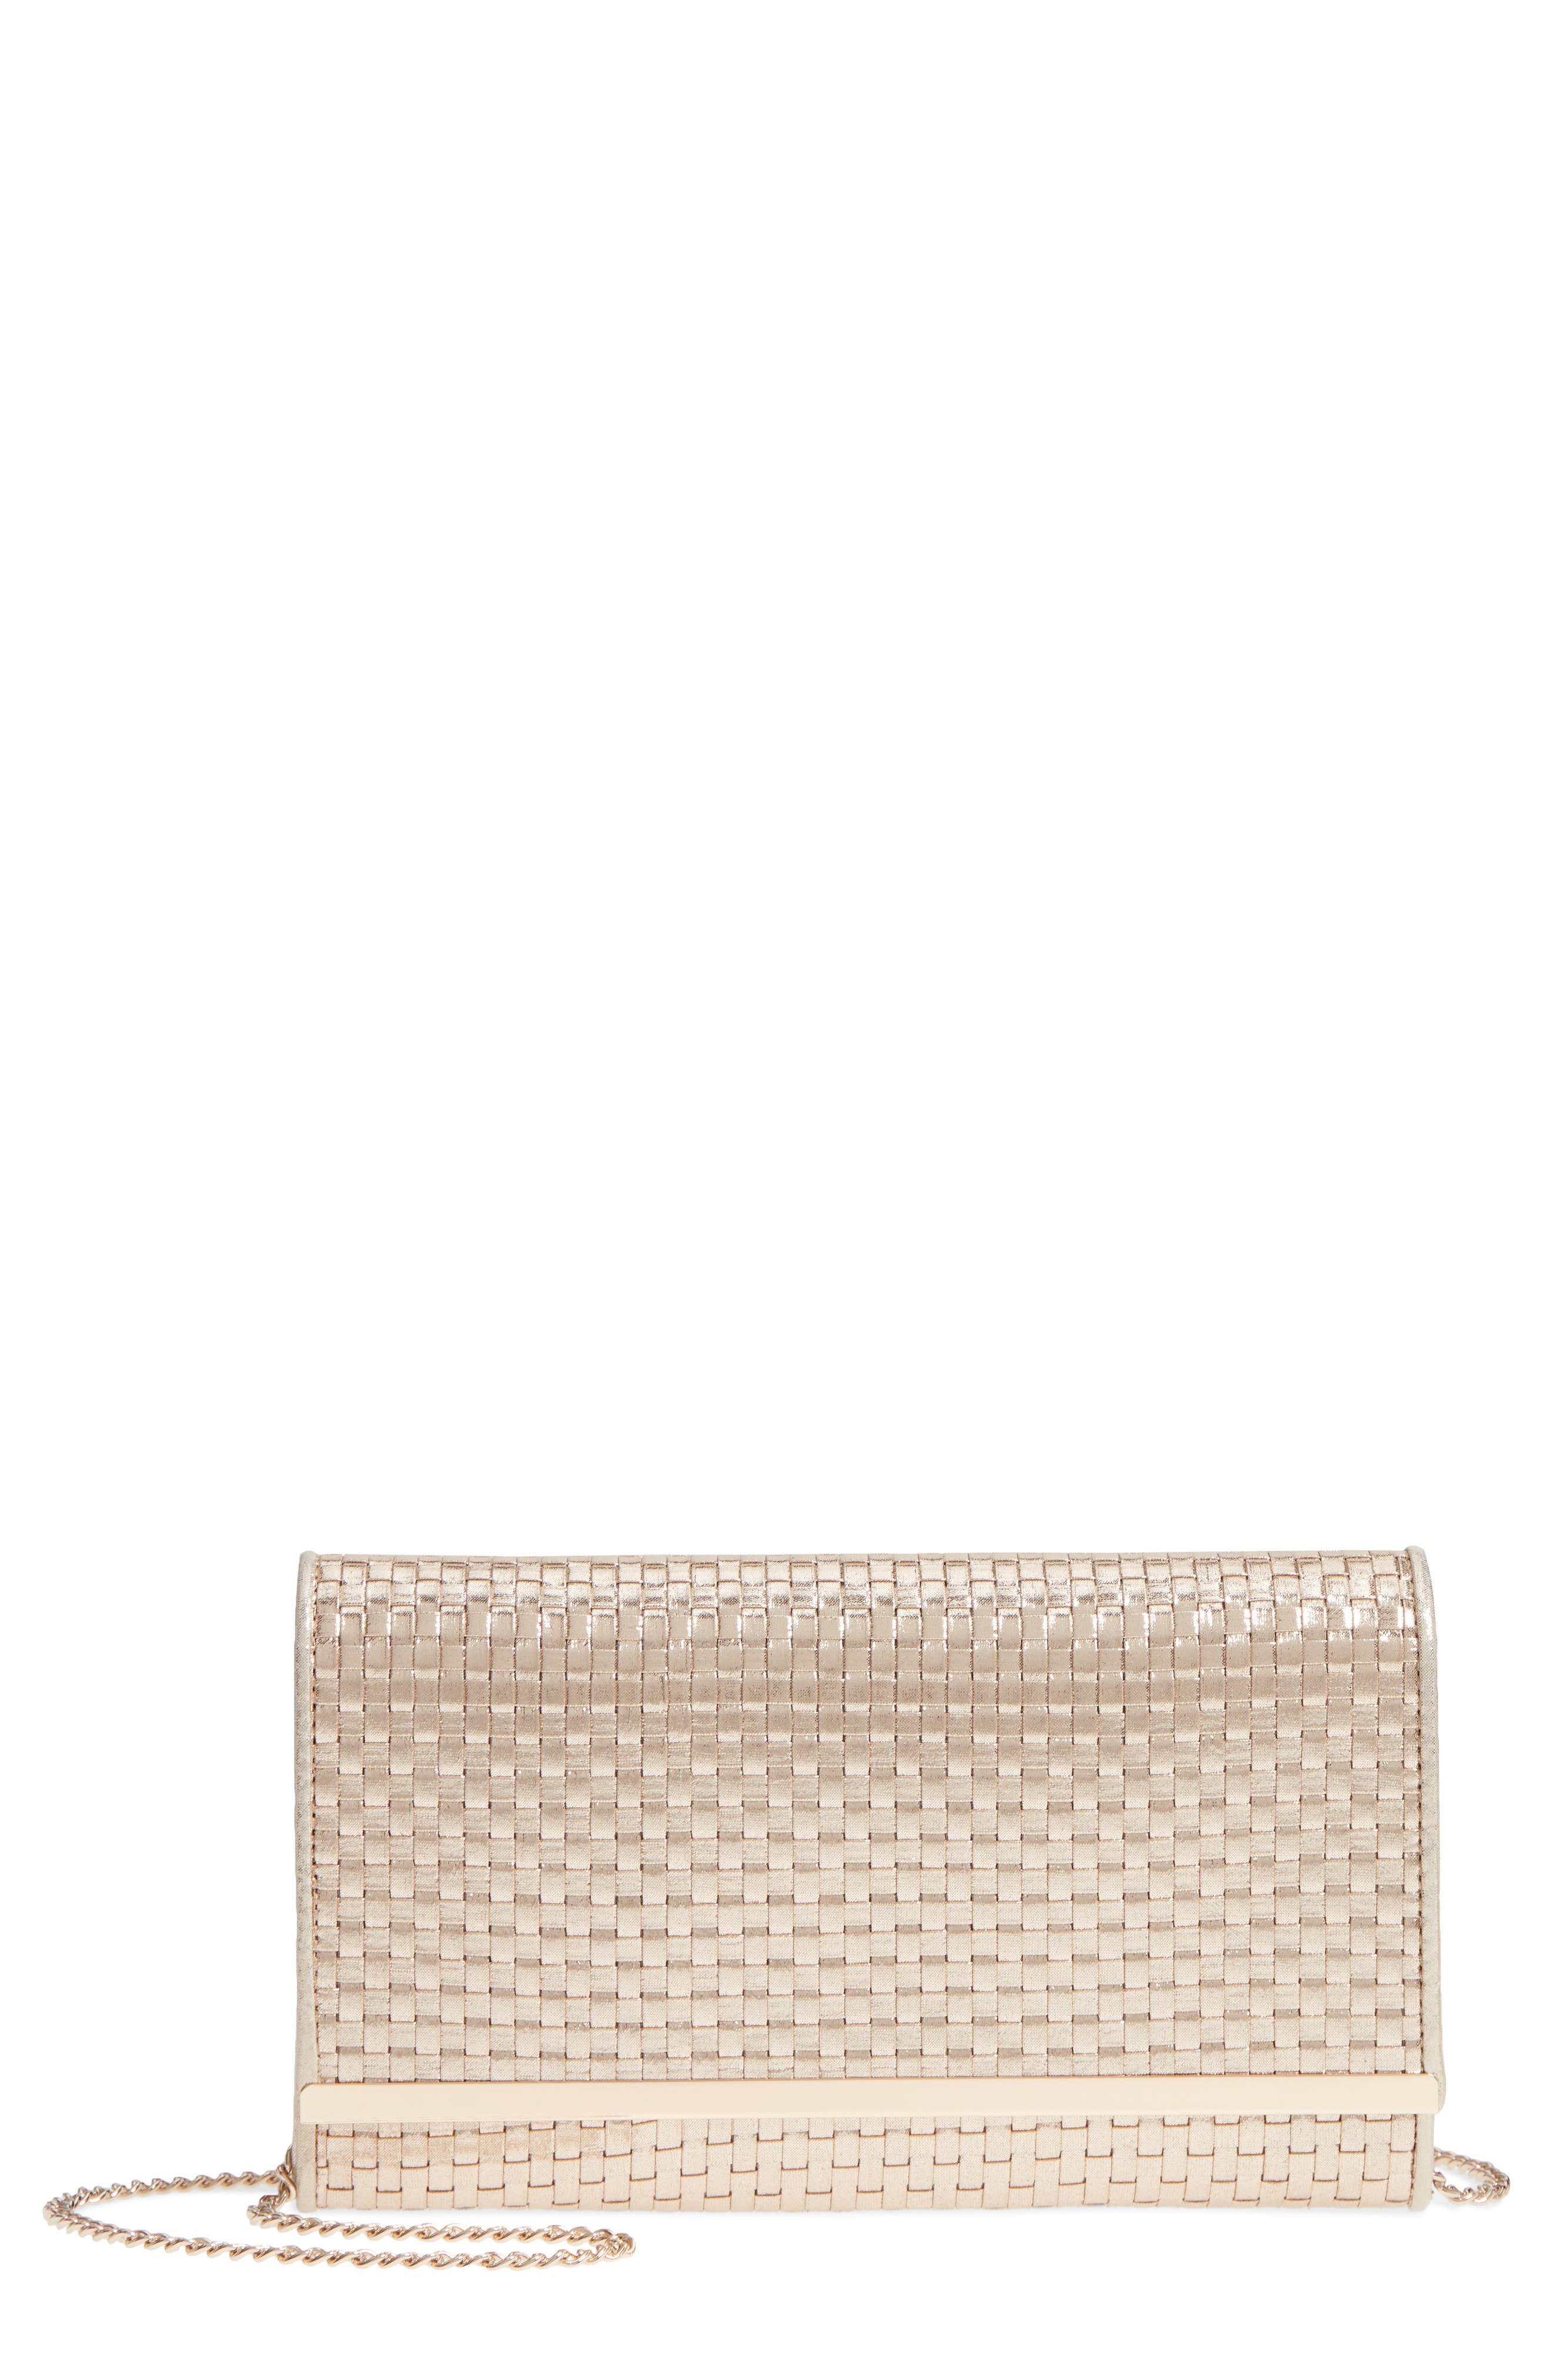 Alternate Image 1 Selected - Nordstrom Woven Faux Leather Metallic Clutch